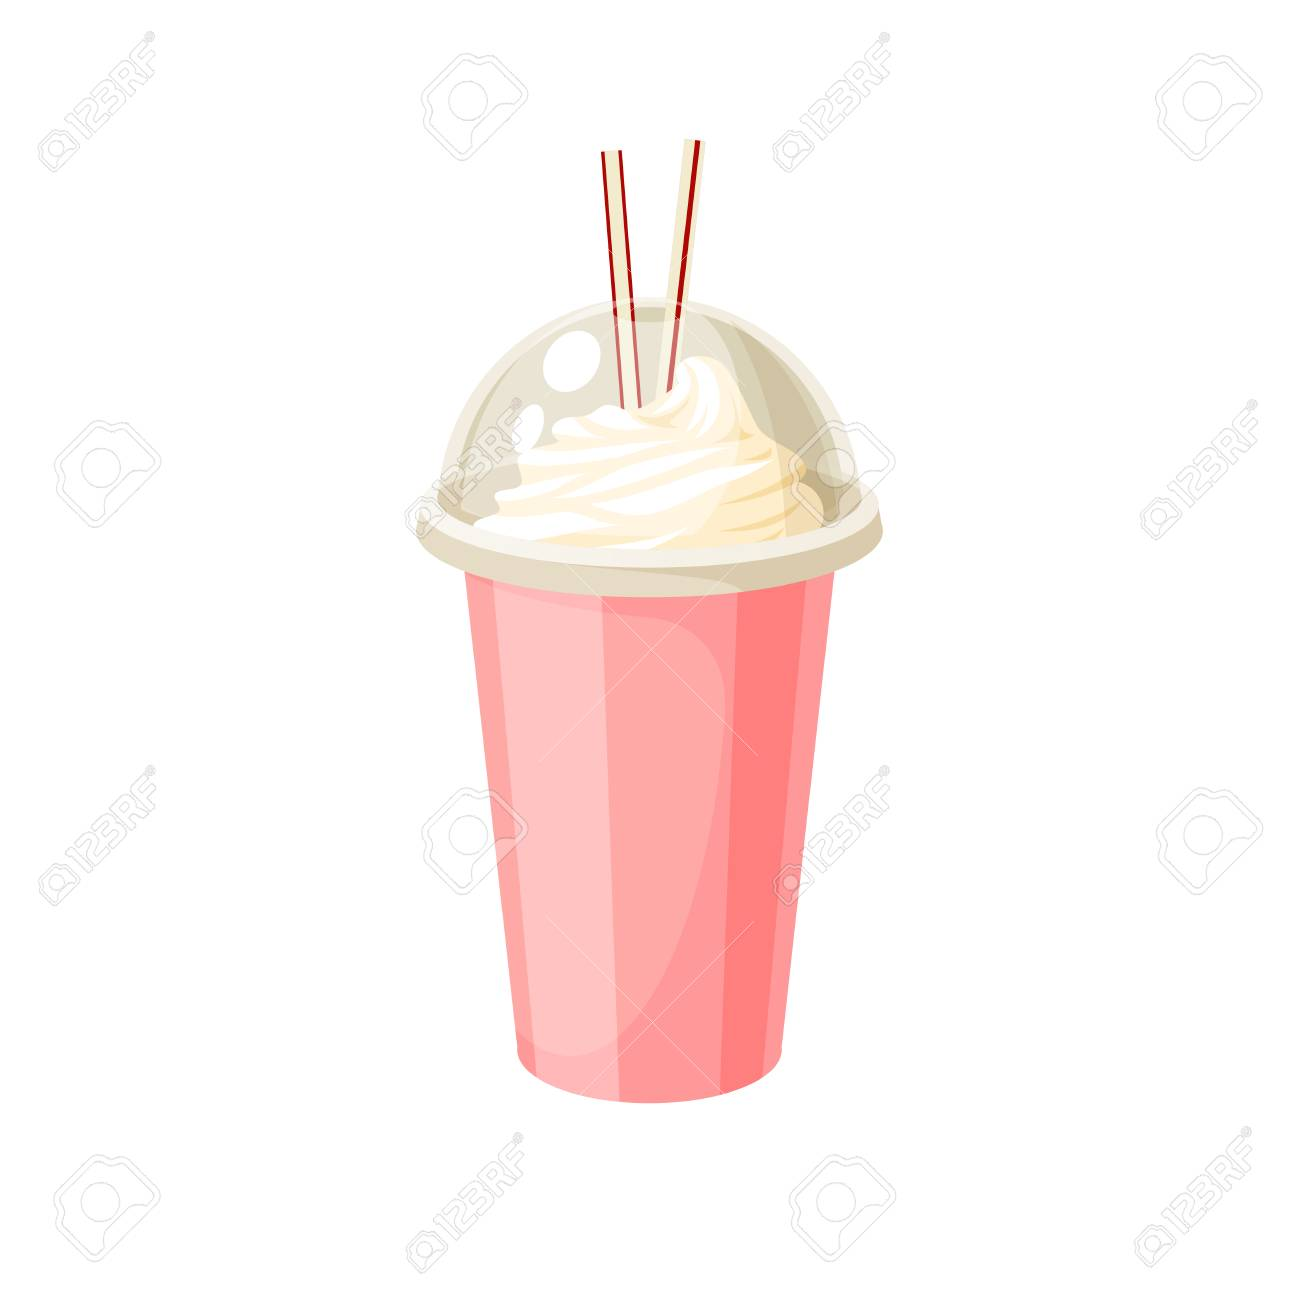 Plastic cup with lid and straw, full of milkshake. Vector illustration cartoon flat icon isolated on white. - 98368039